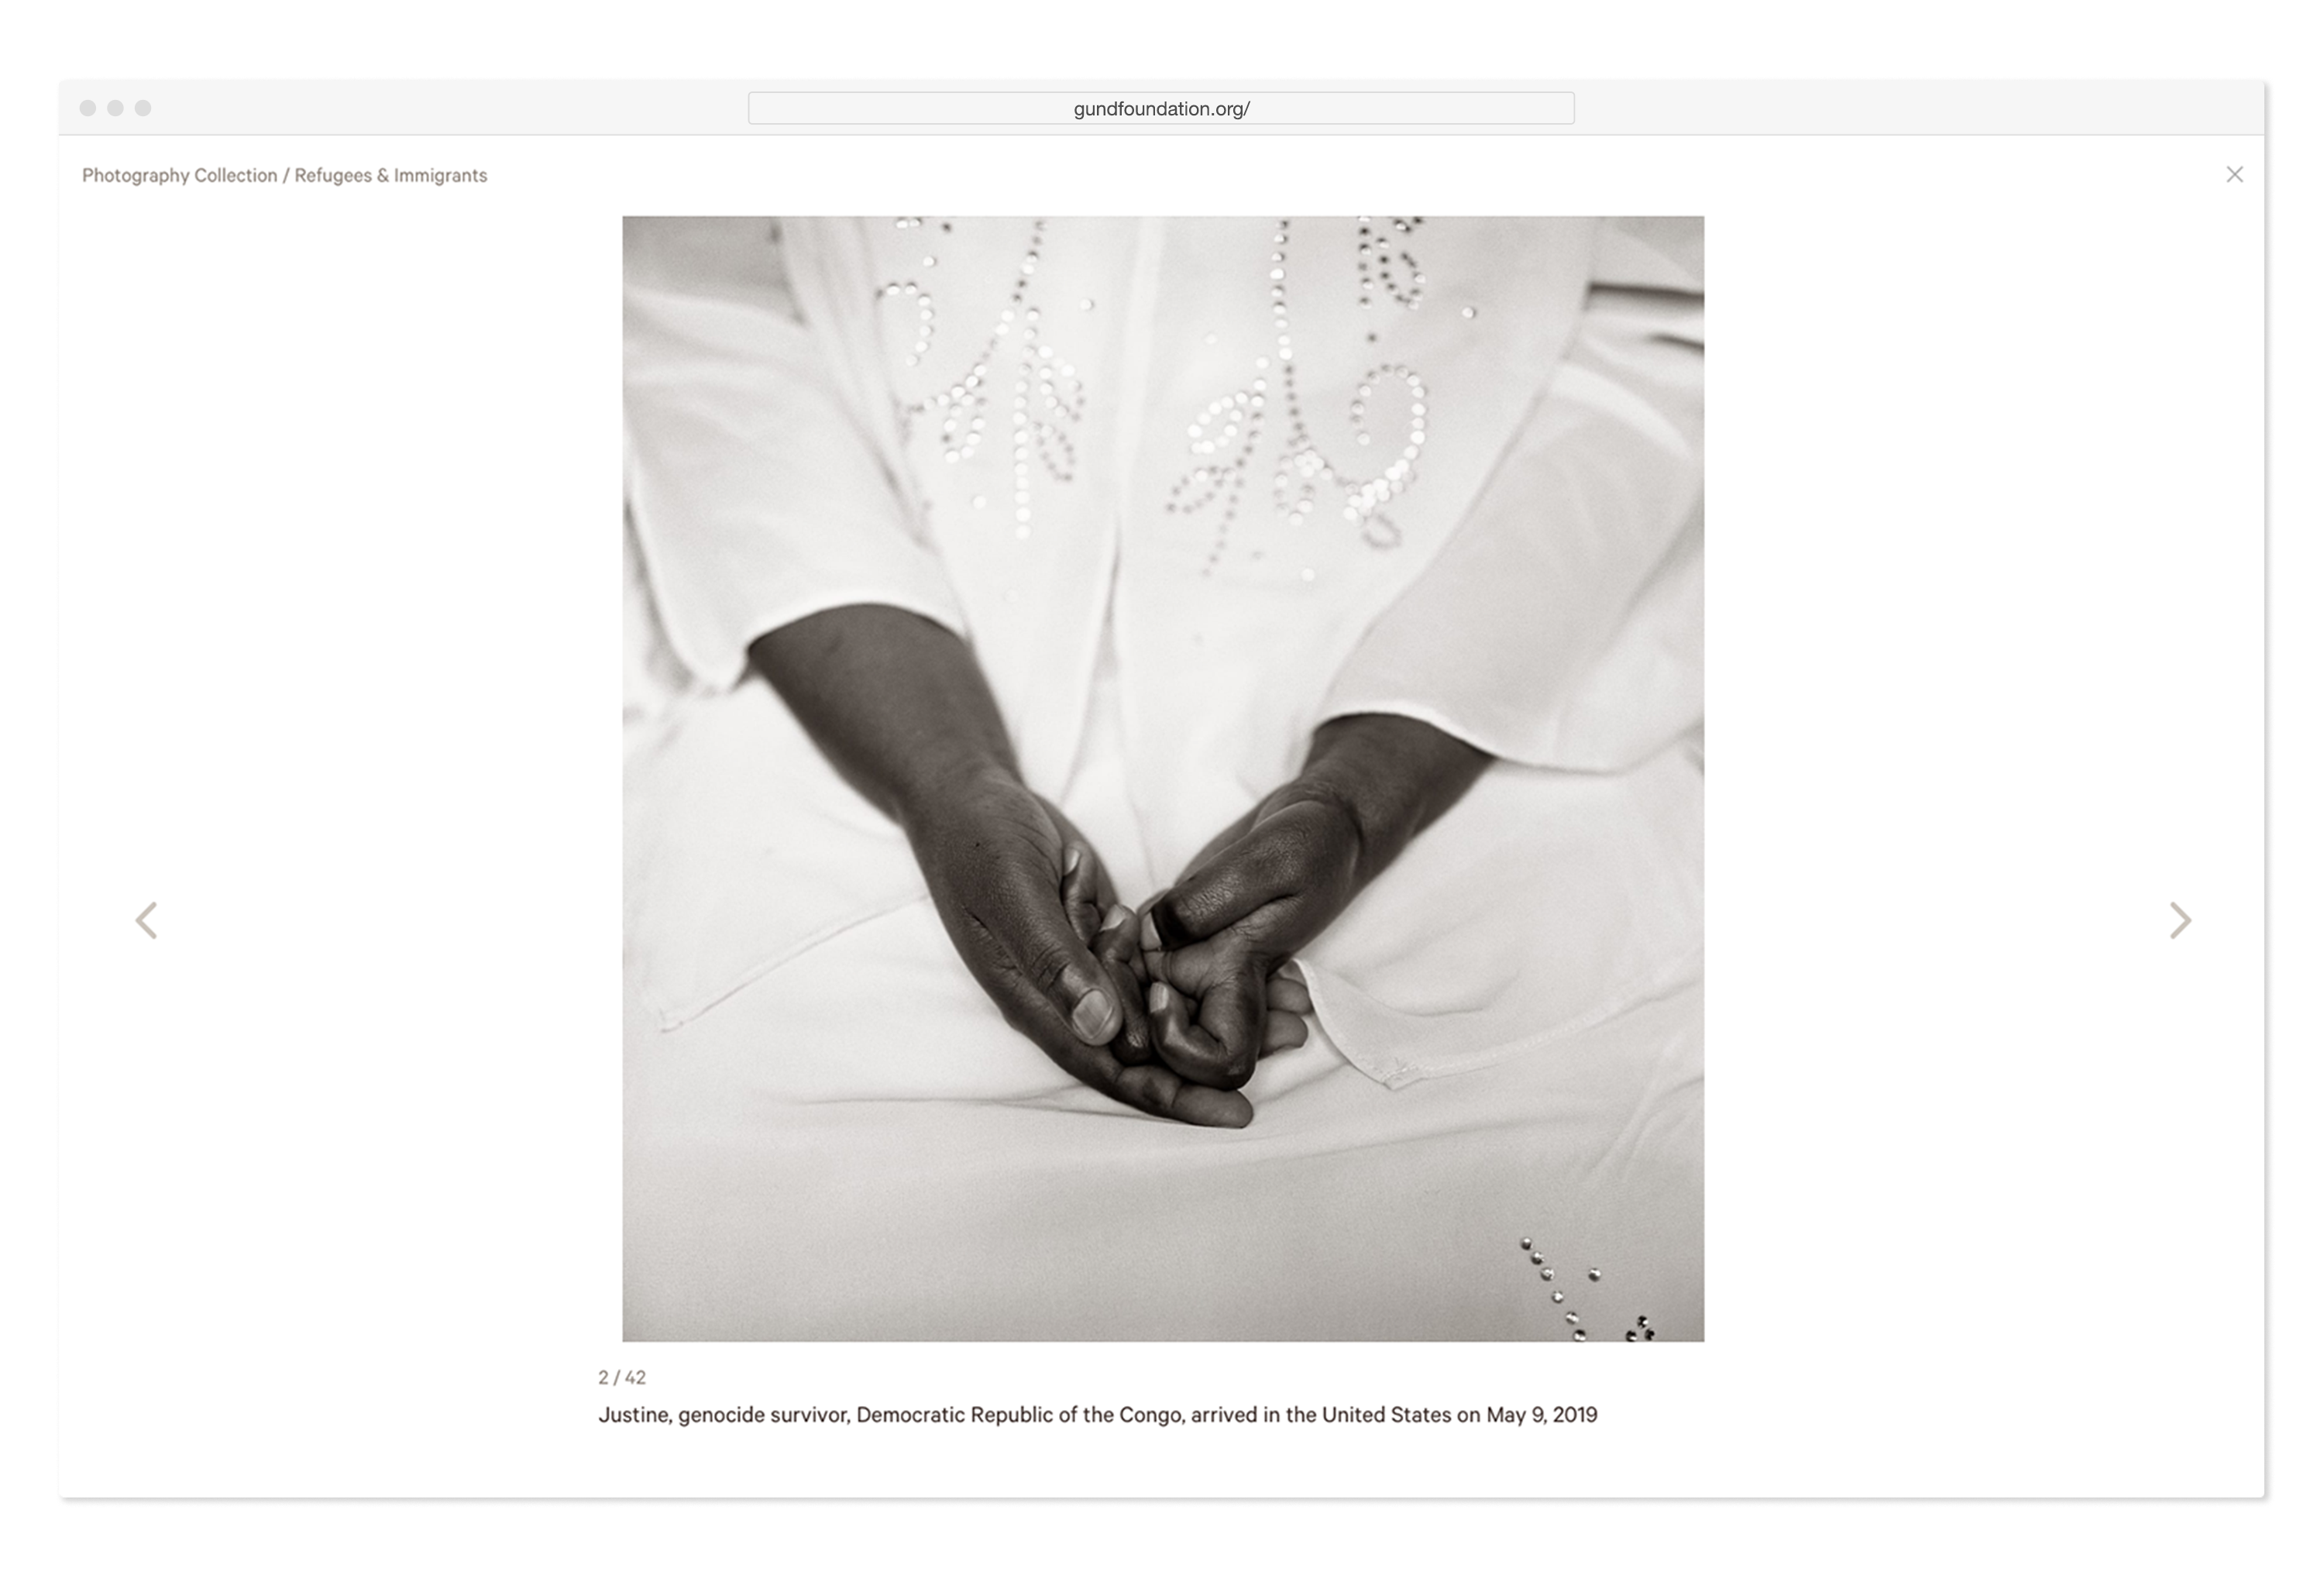 Web browser view of The George Gund Foundation annual web design, featuring hands photographed by Fazel Sheikh